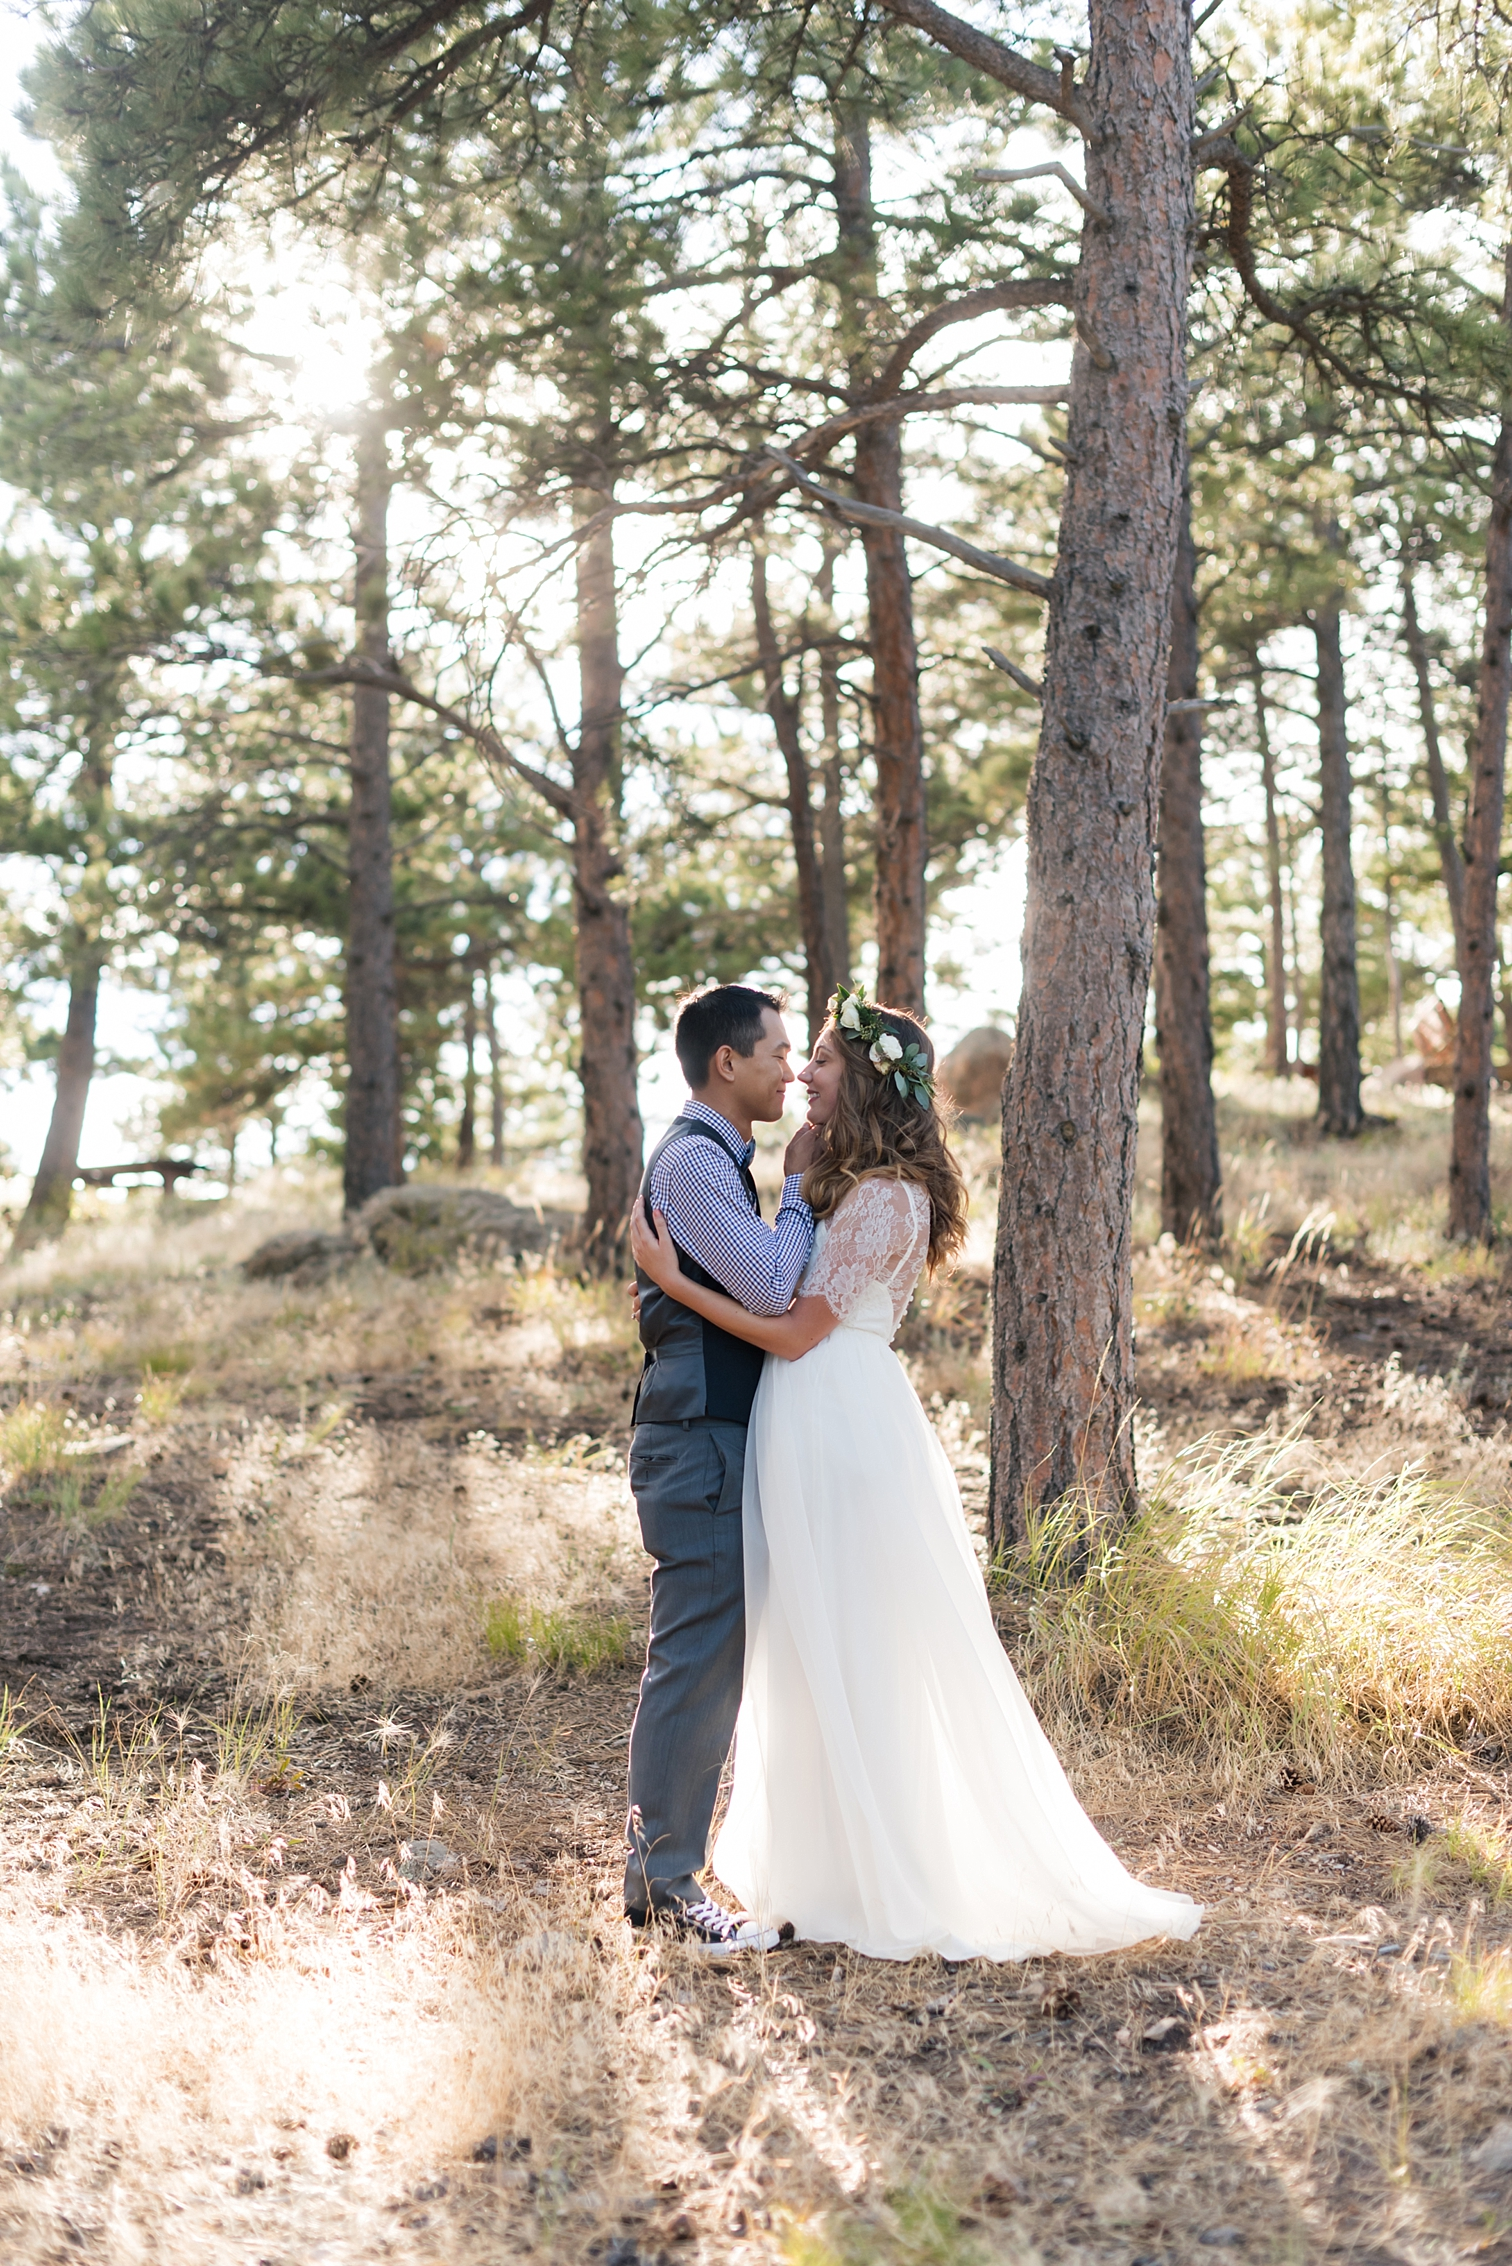 First Look, Mountain Weddings, Film Photographers, Colorado Weddings, Best Destination Weddings